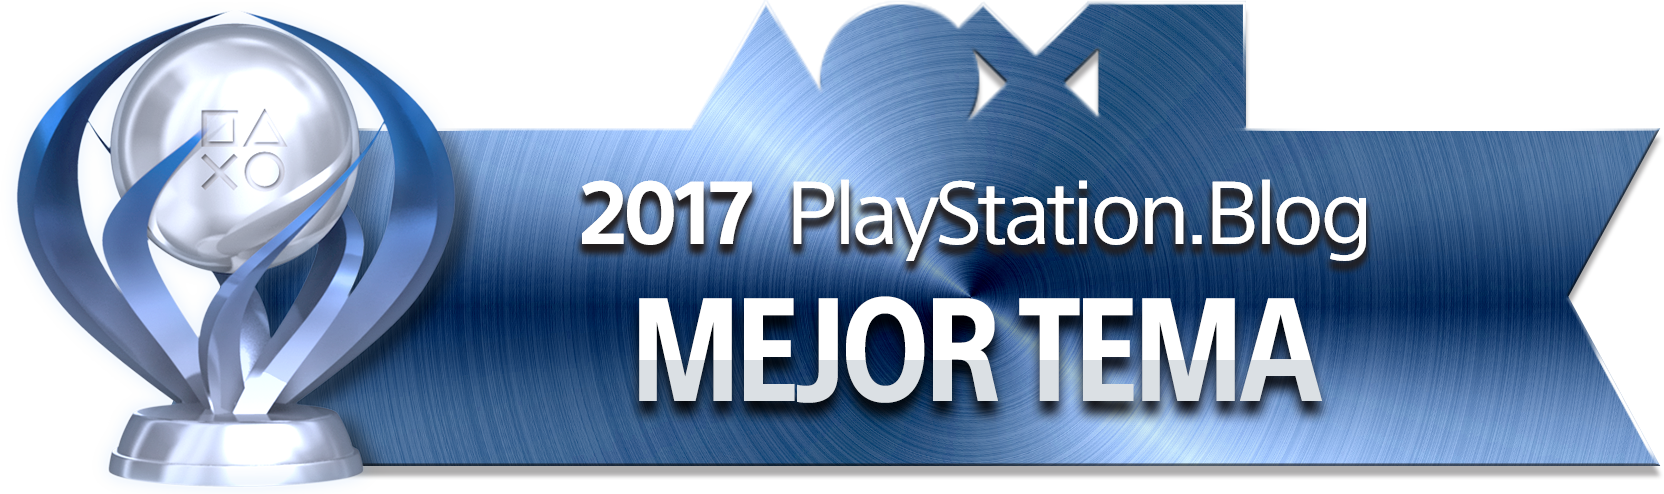 PlayStation Blog Game of the Year 2017 - Best PS4 Theme (Platinum)